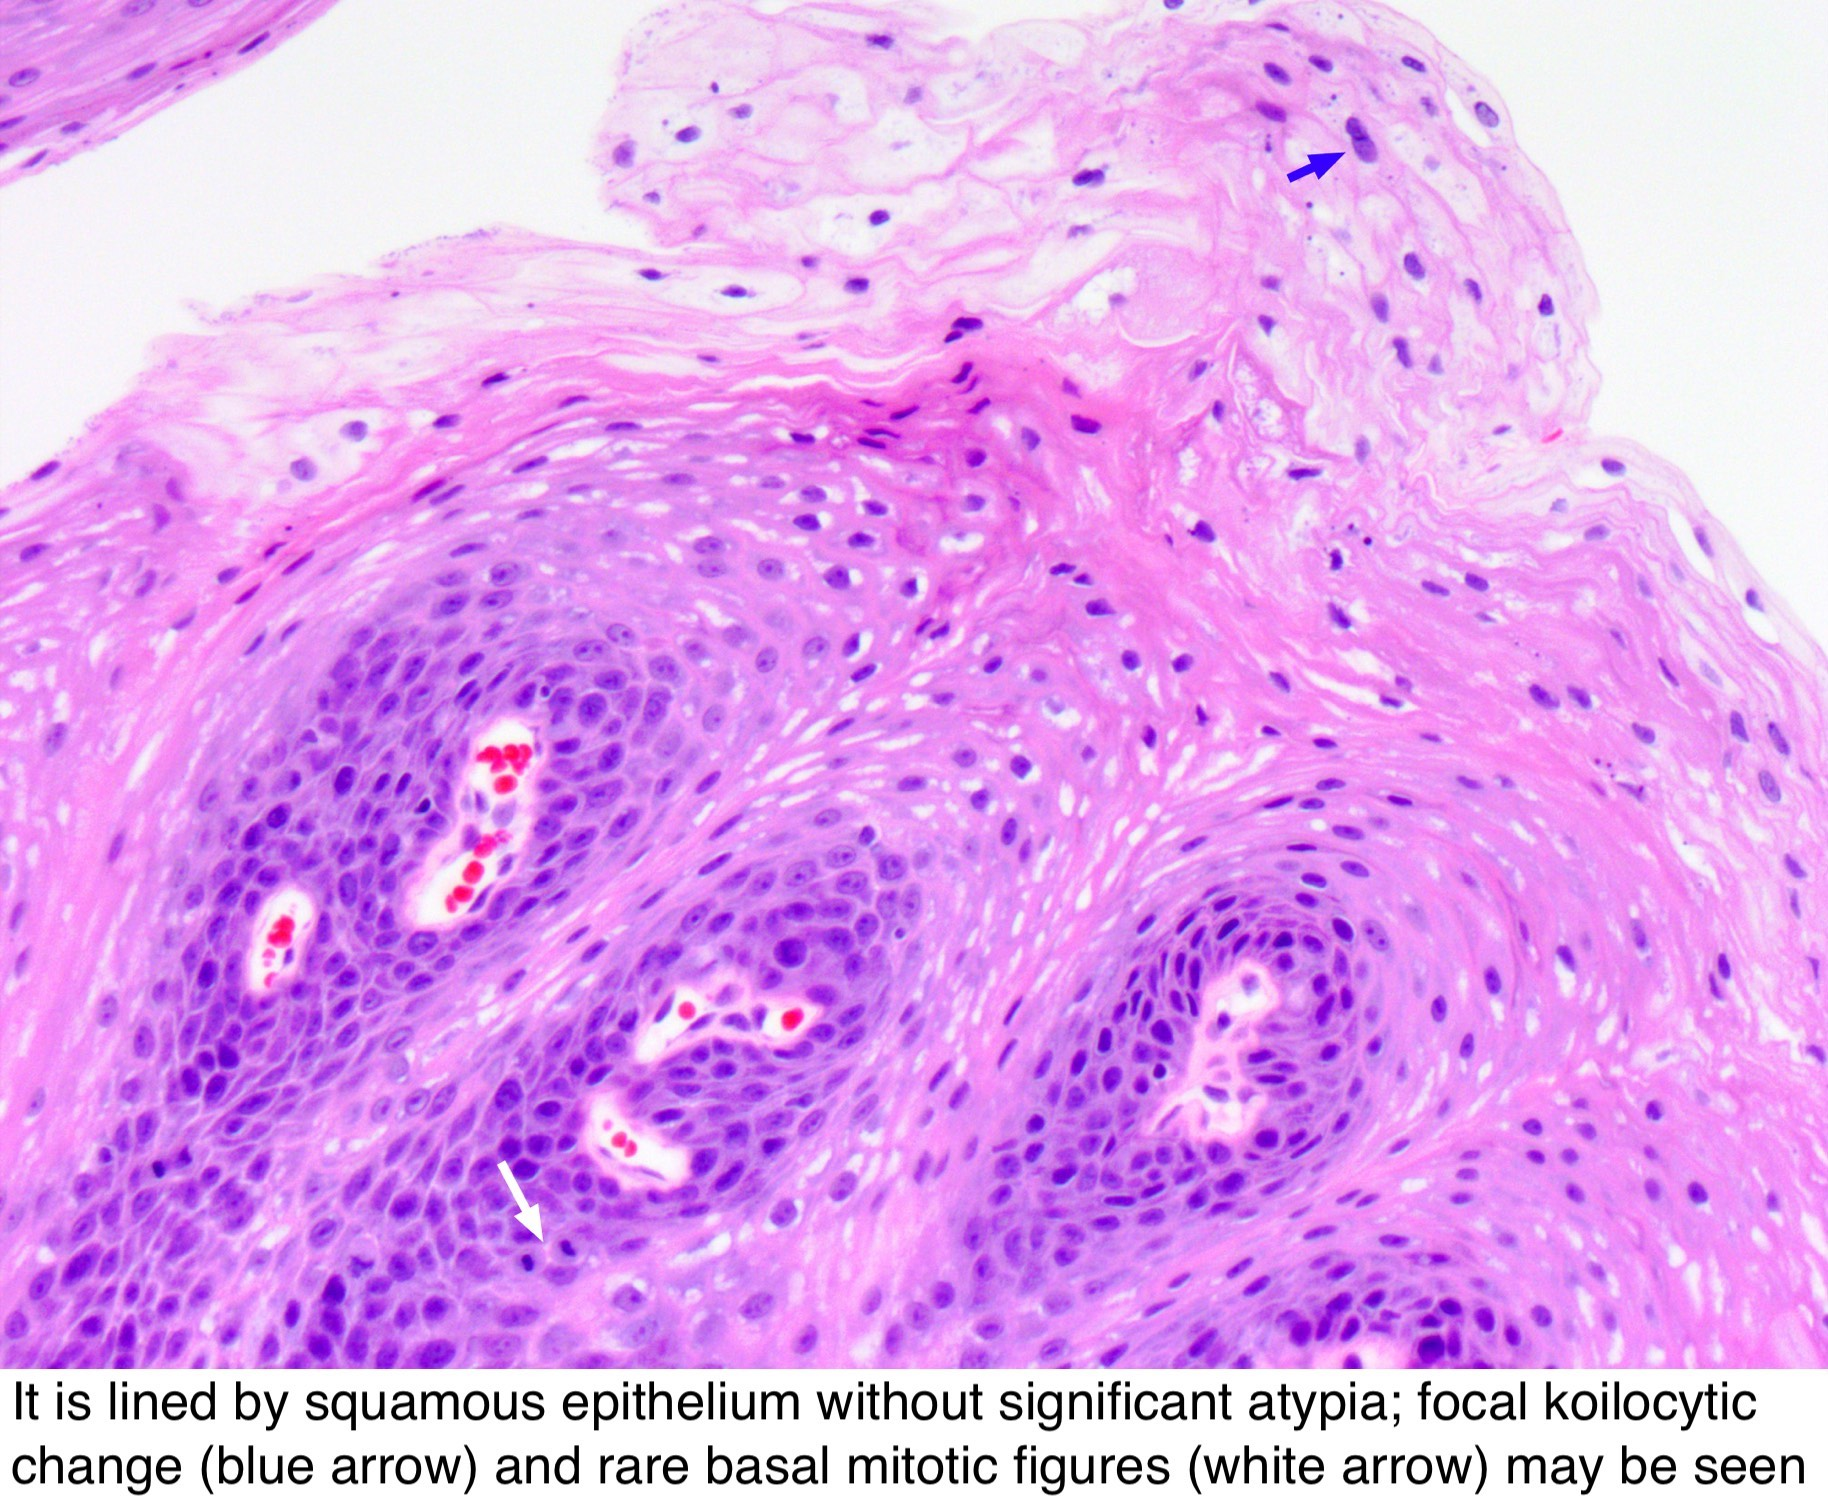 Squamous papilloma path outlines,, Squamous papilloma path outlines